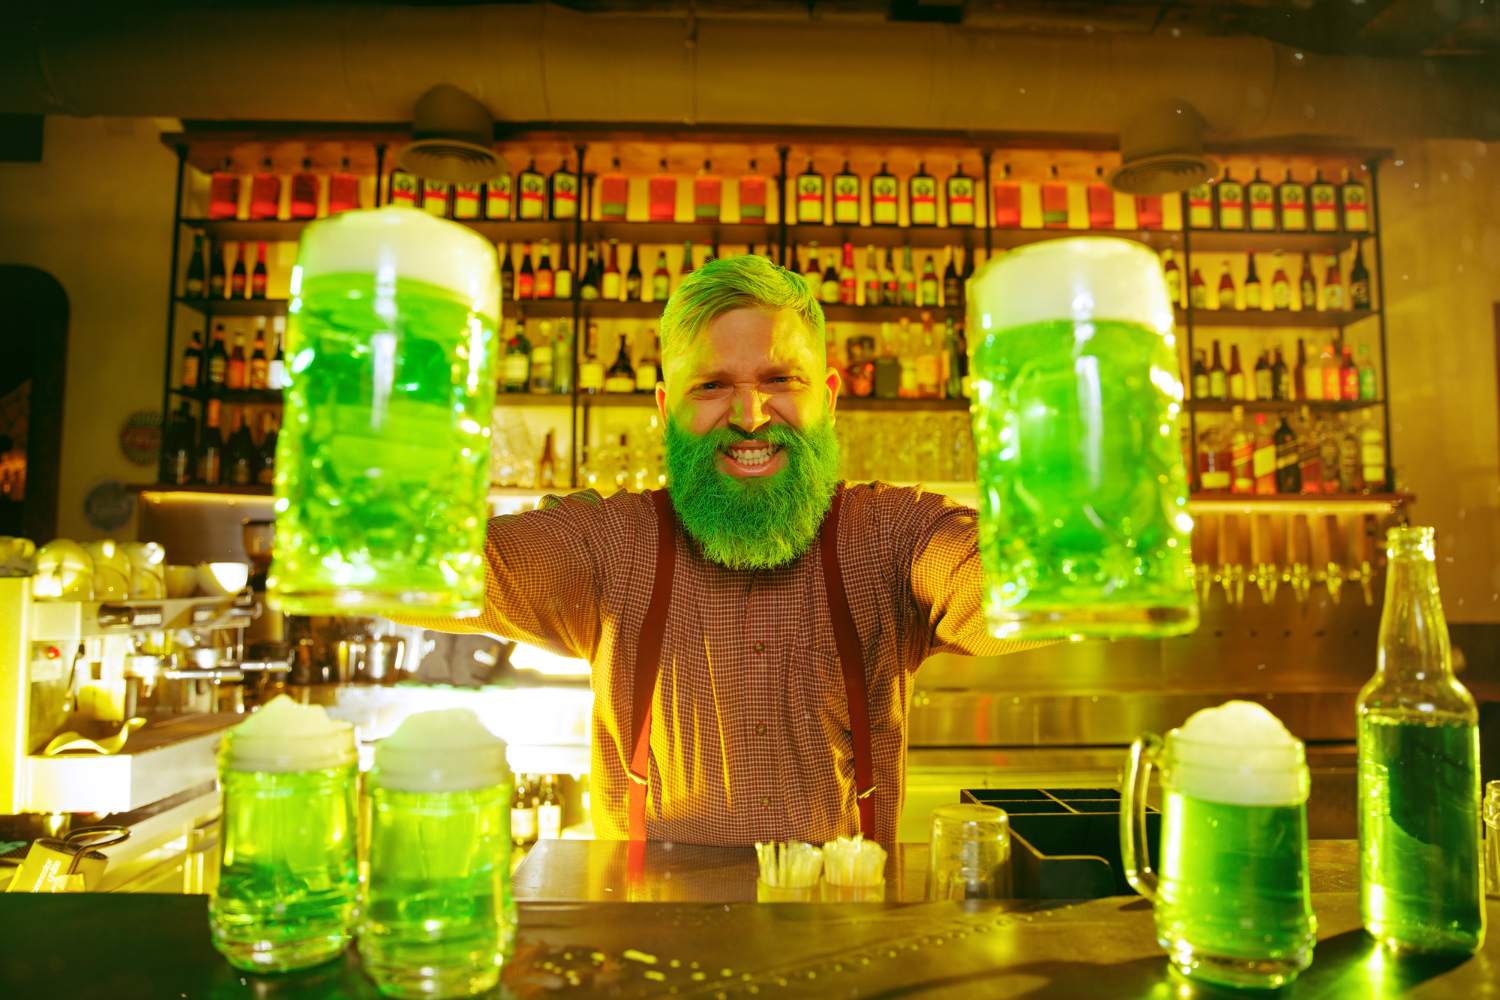 Bartender holding up two drinks in an Irish bar